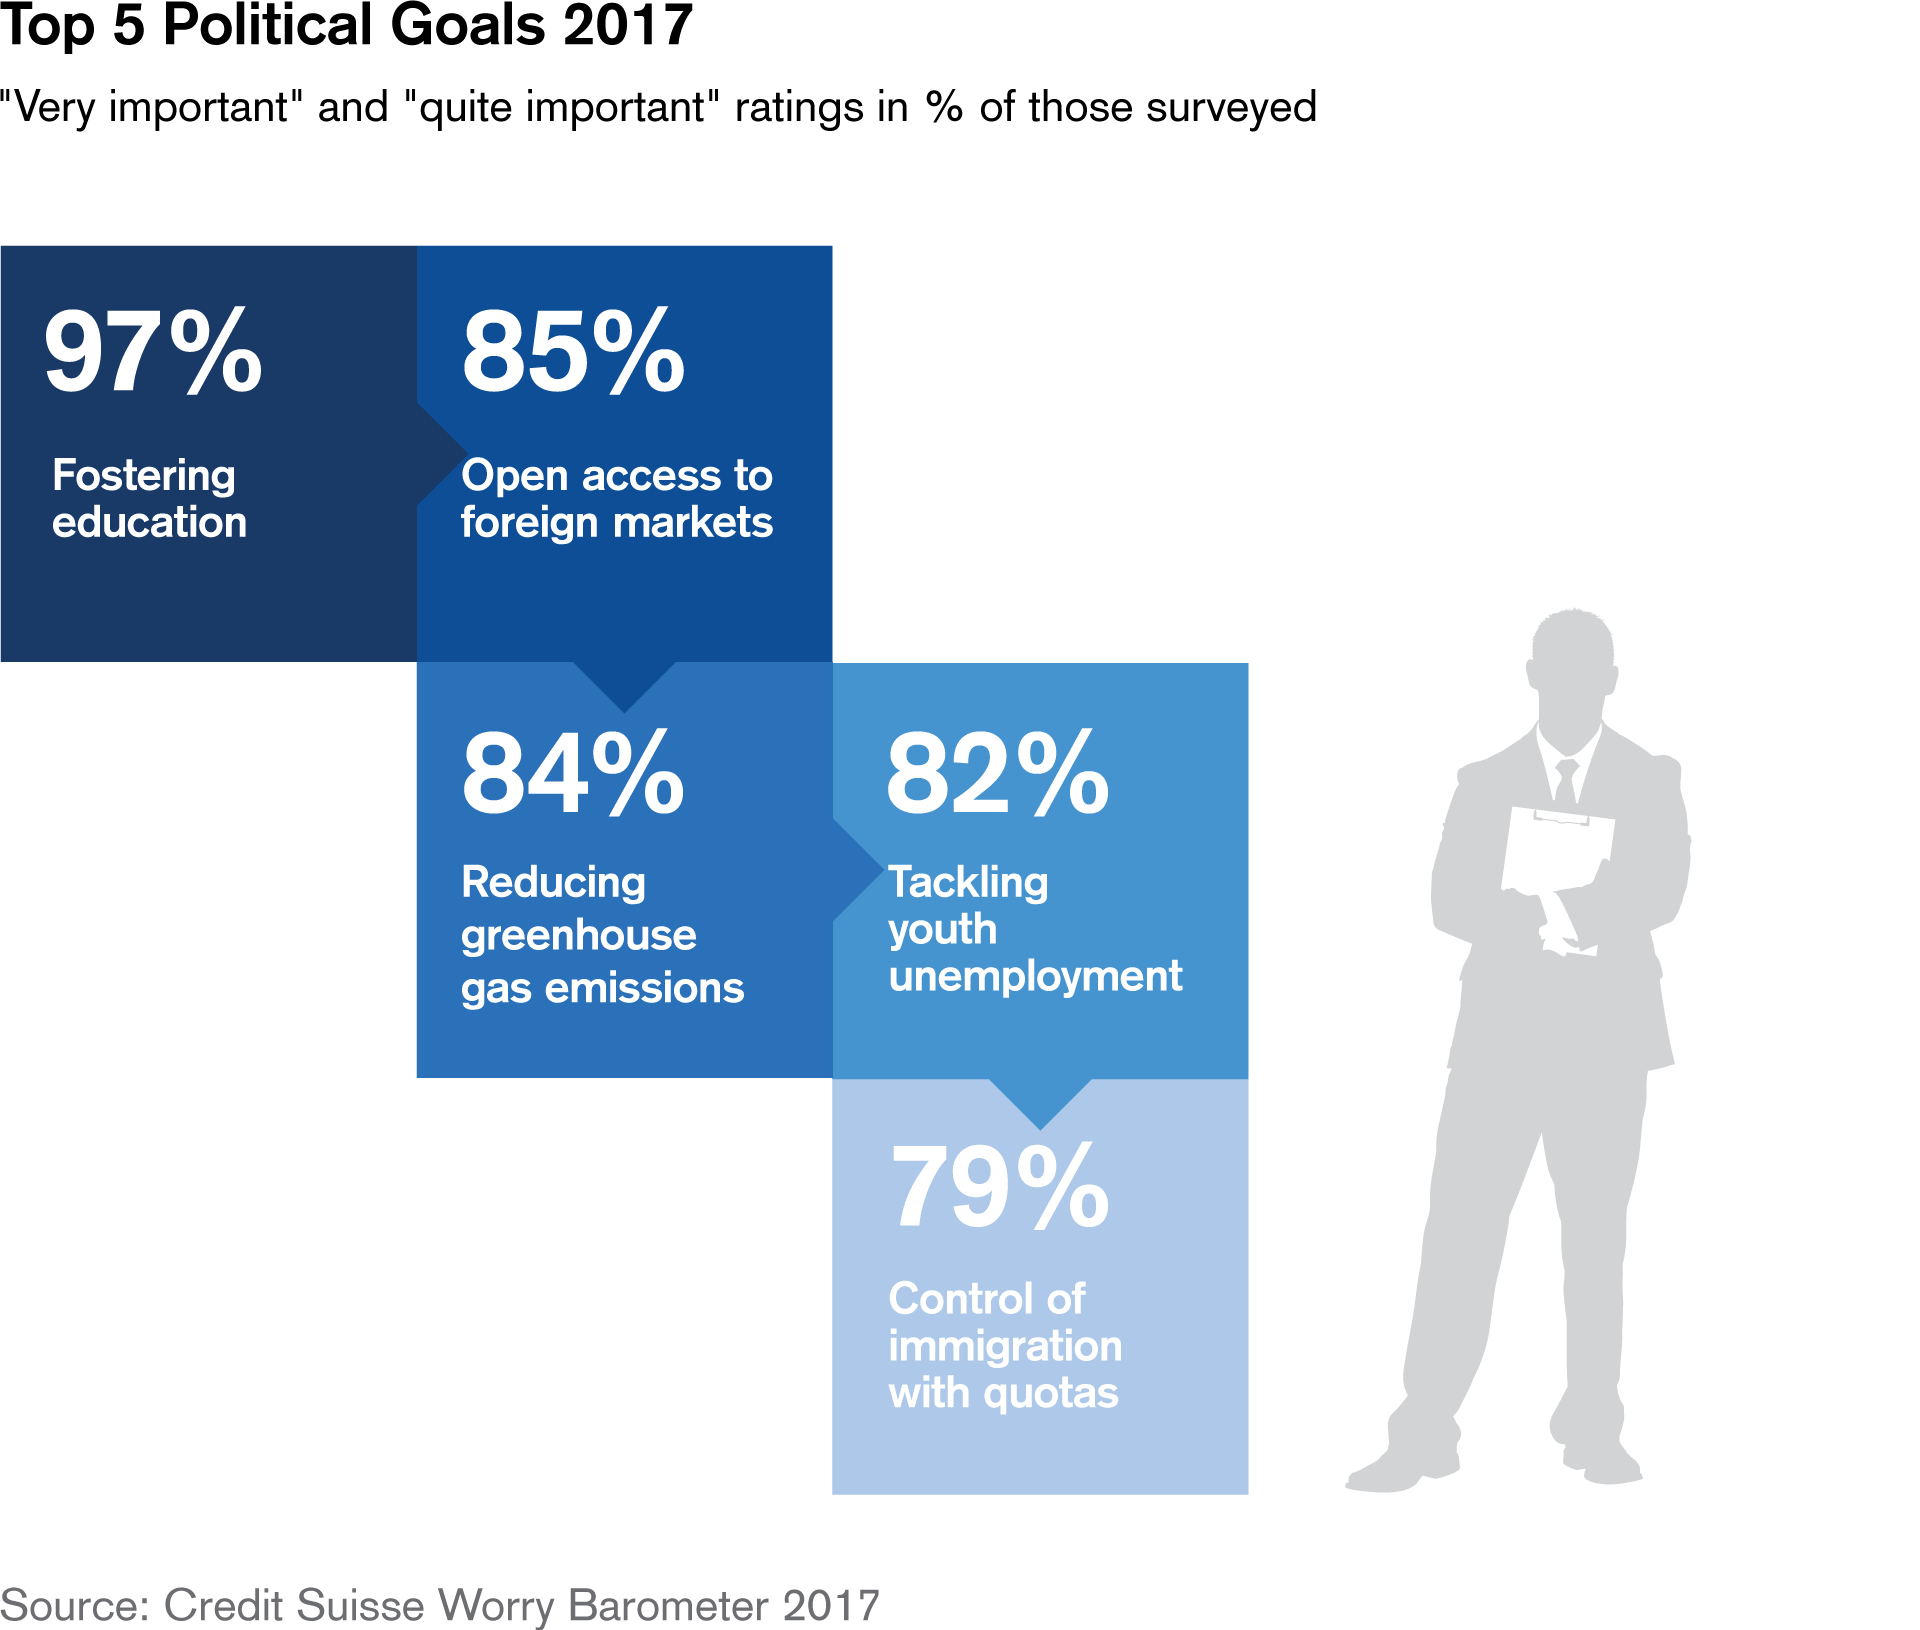 Top 5 Political Goals 2017